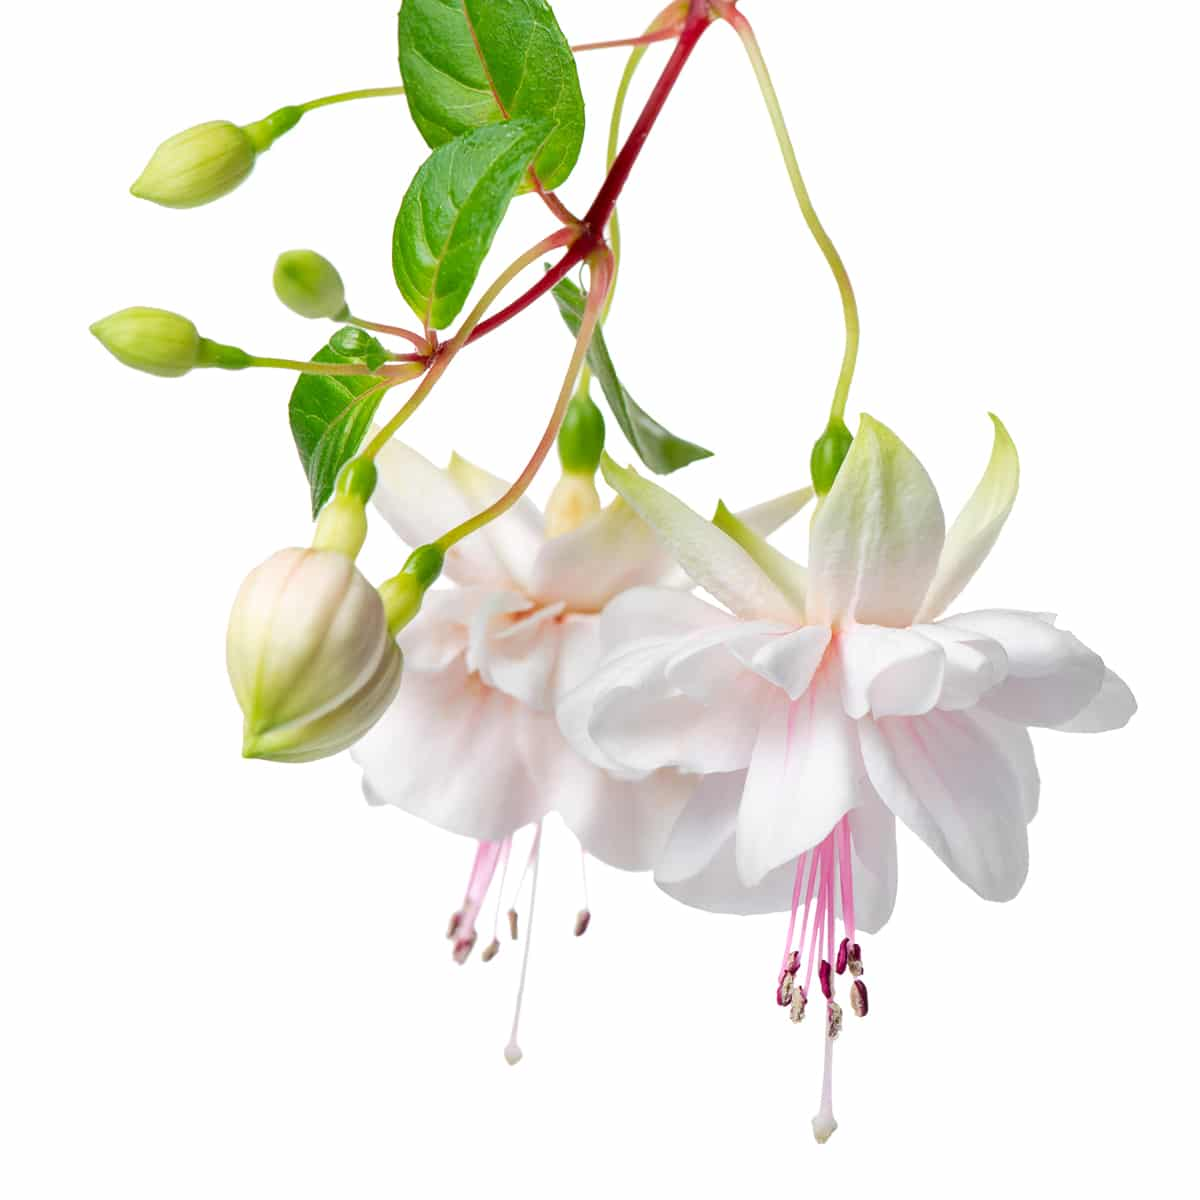 Two soft white fuscia flowers isolated against a bright white background.